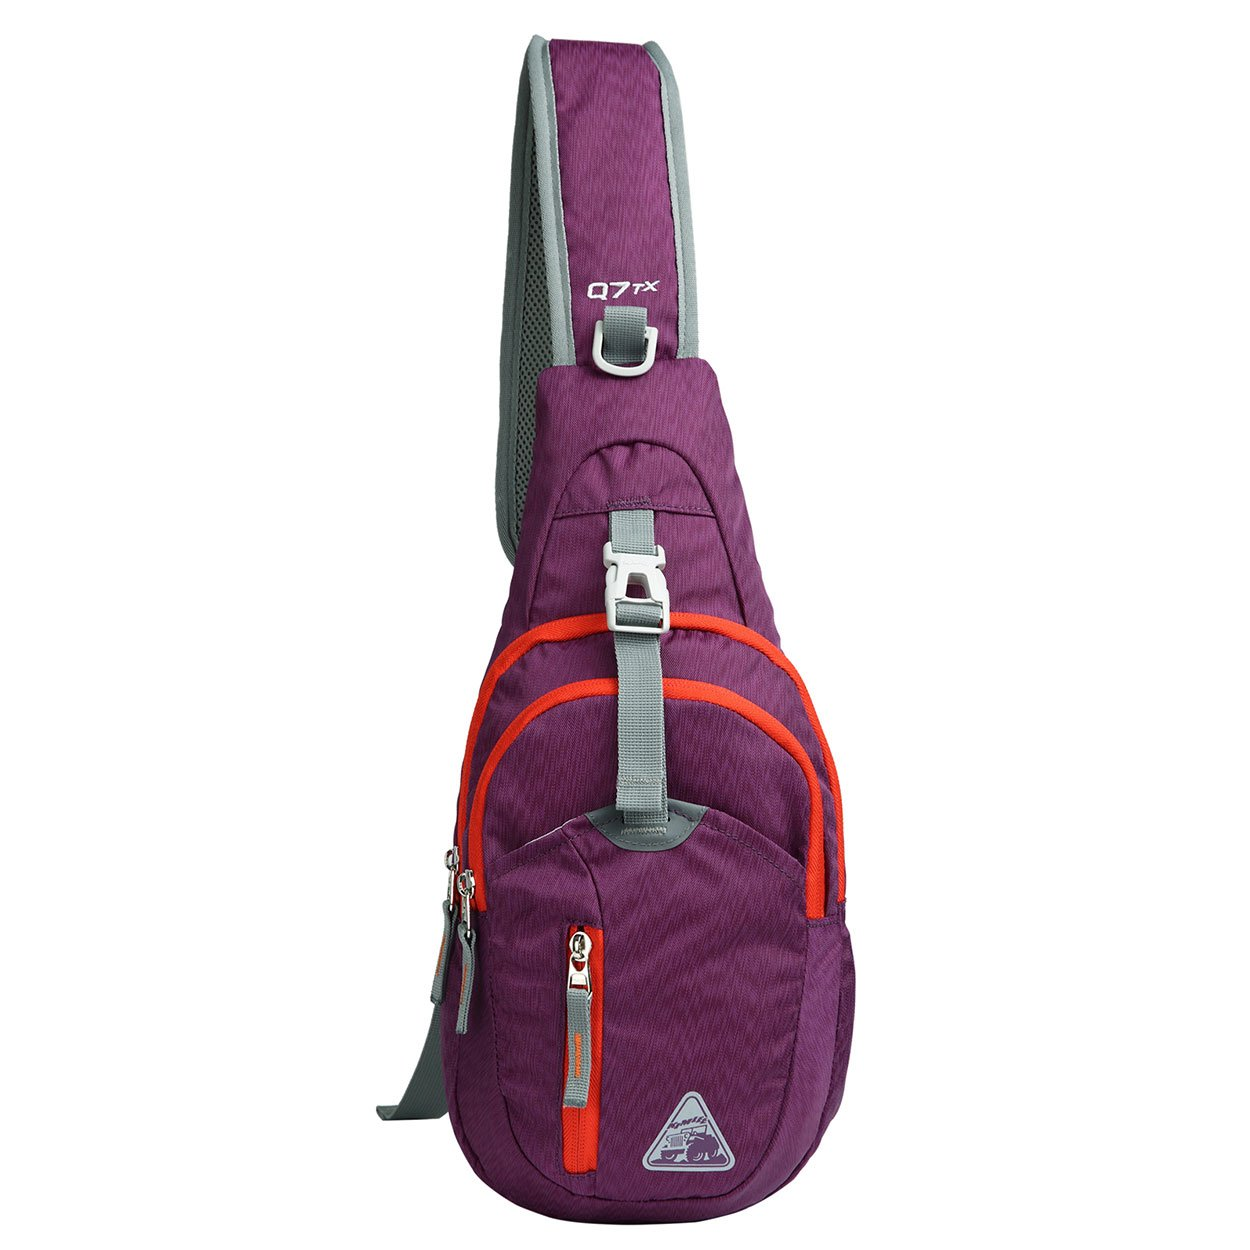 KIMLEE Purple Sling Bag Hiking Traveling Small Backpack Water Resistant Crossbody Chest Shoulder Bag Casual Daypack